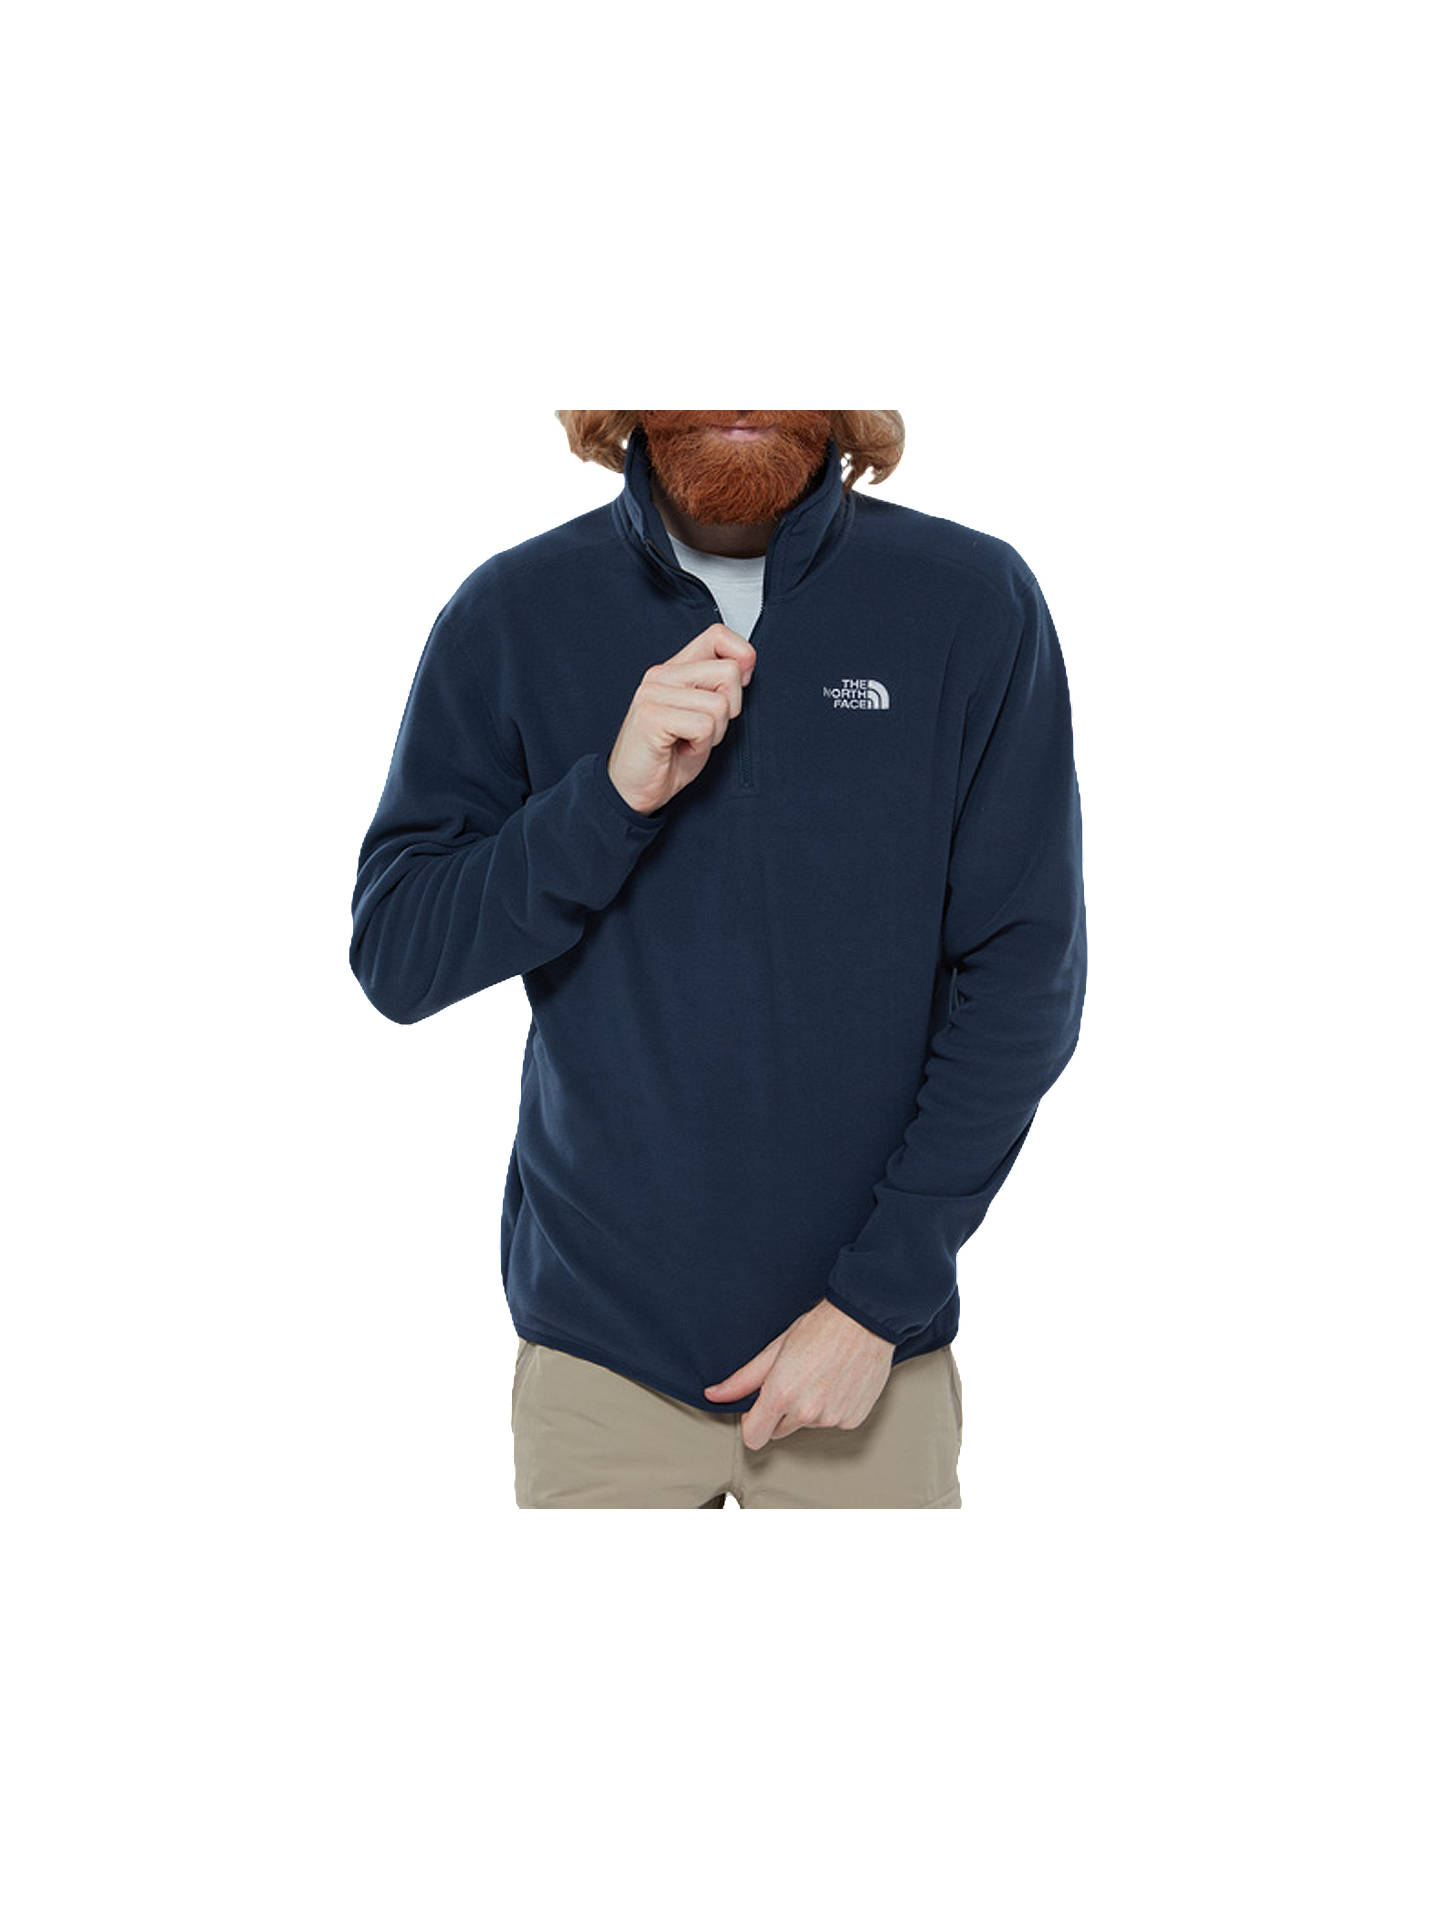 BuyThe North Face 100 Glacier 1/4 Zip Men's Fleece, Navy, S Online at johnlewis.com